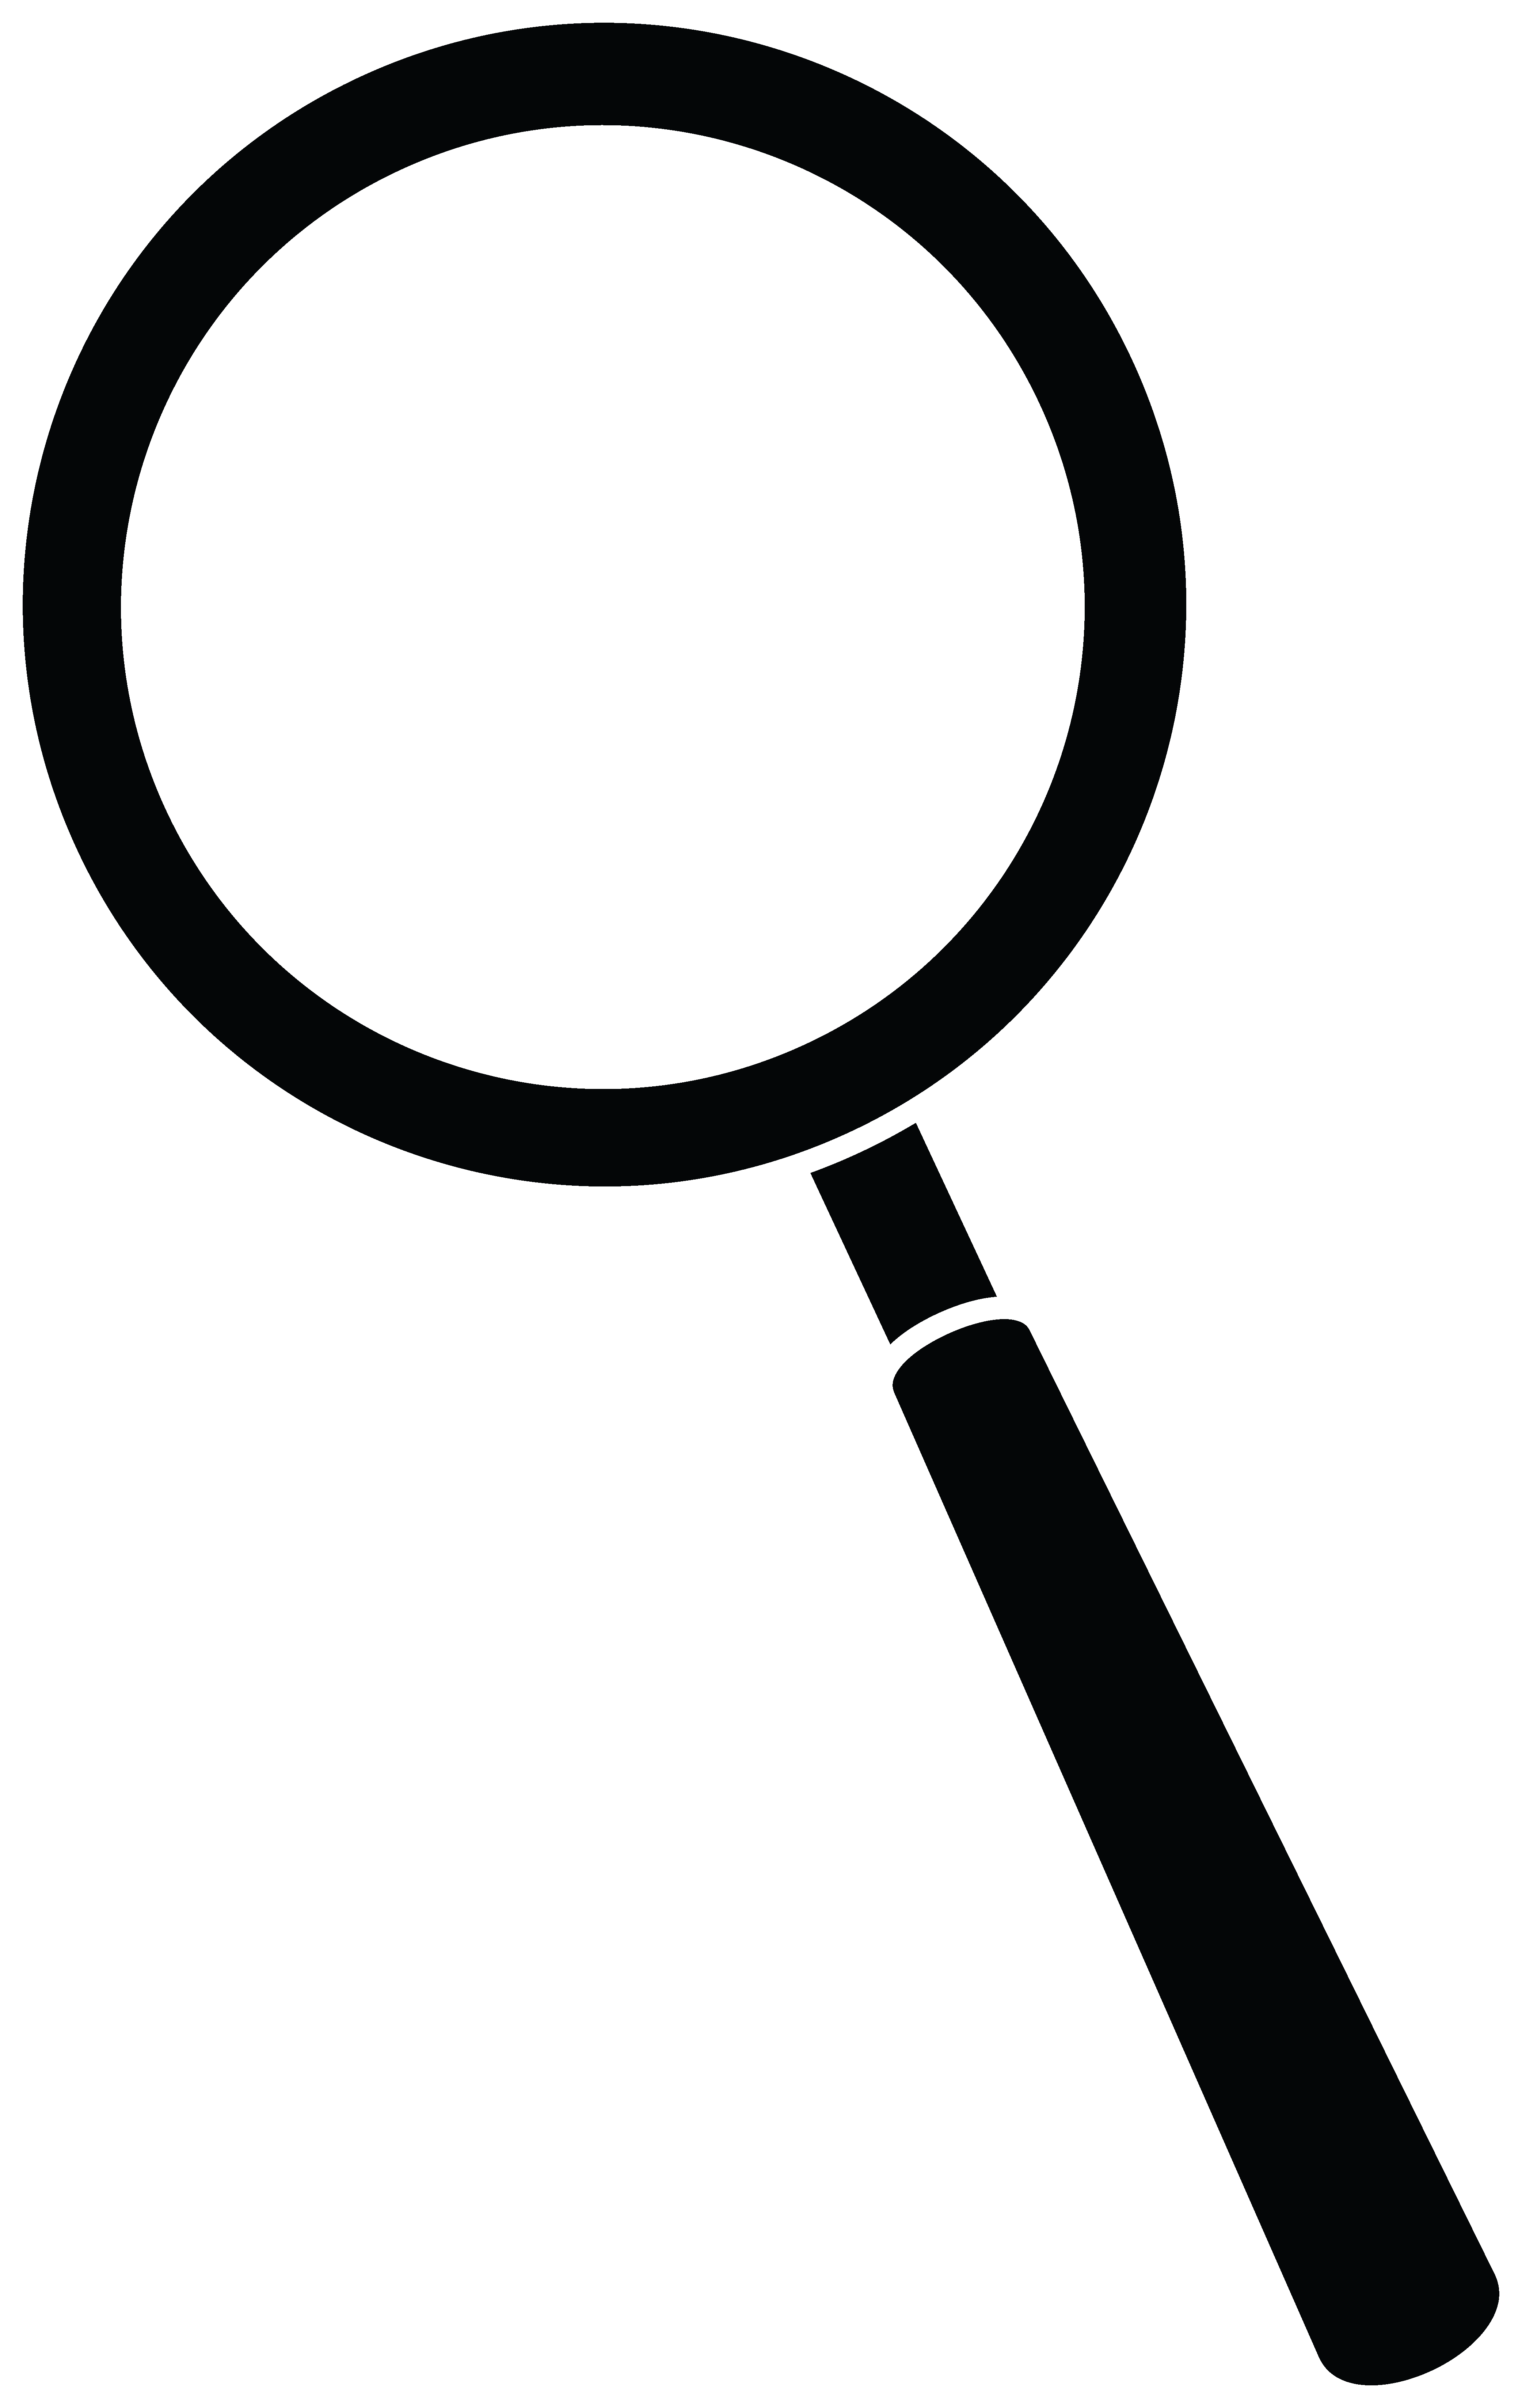 Magnifier clipart icon clipart black and white Collection of 14 free Detective clipart spy glass aztec clipart ... clipart black and white